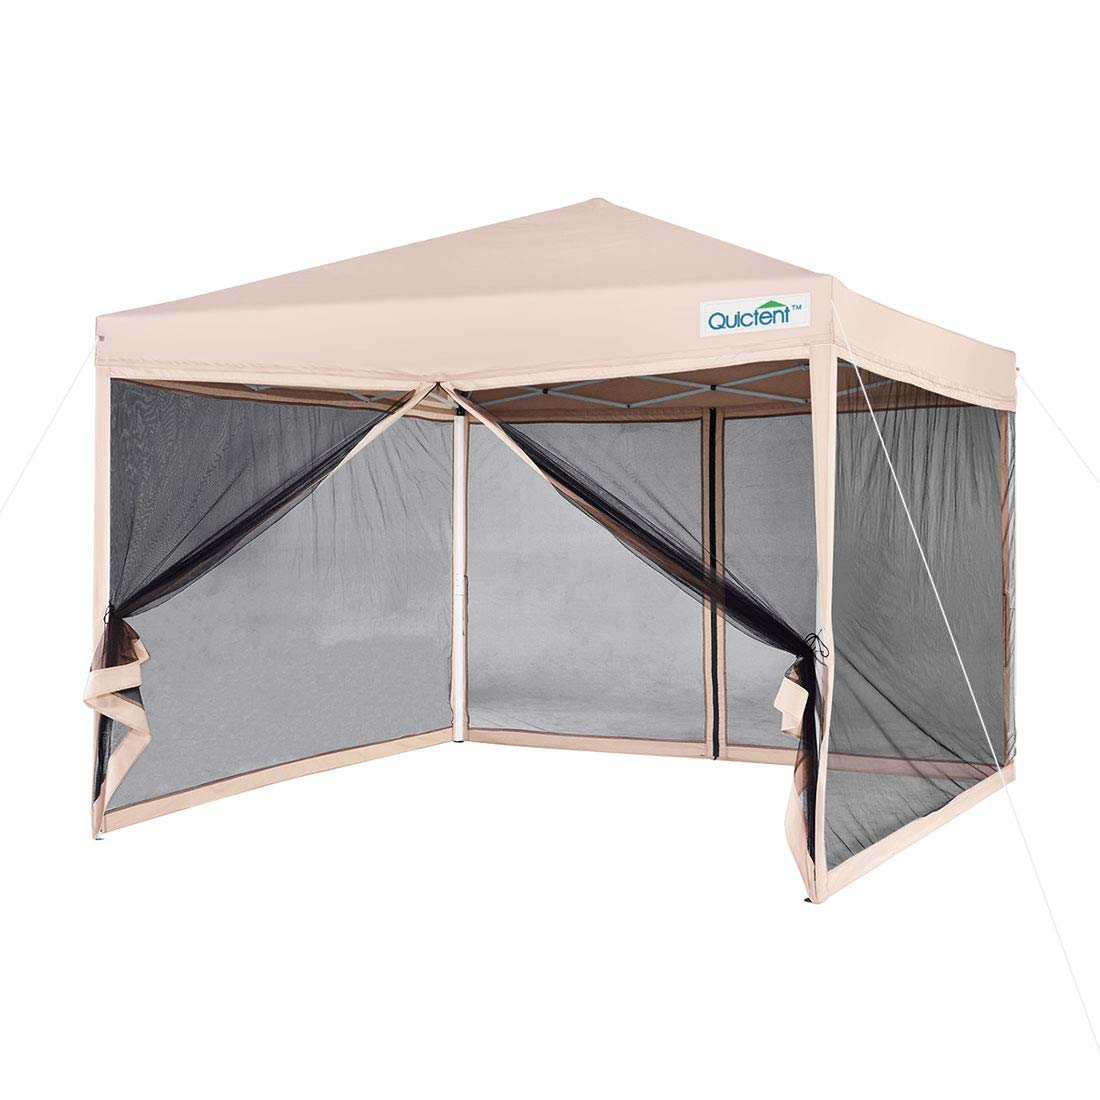 Quictent 8x8 Easy Pop up Canopy with Netting Instant Pop up Screen House Tent Mesh Sides Waterproof (Tan) by Quictent